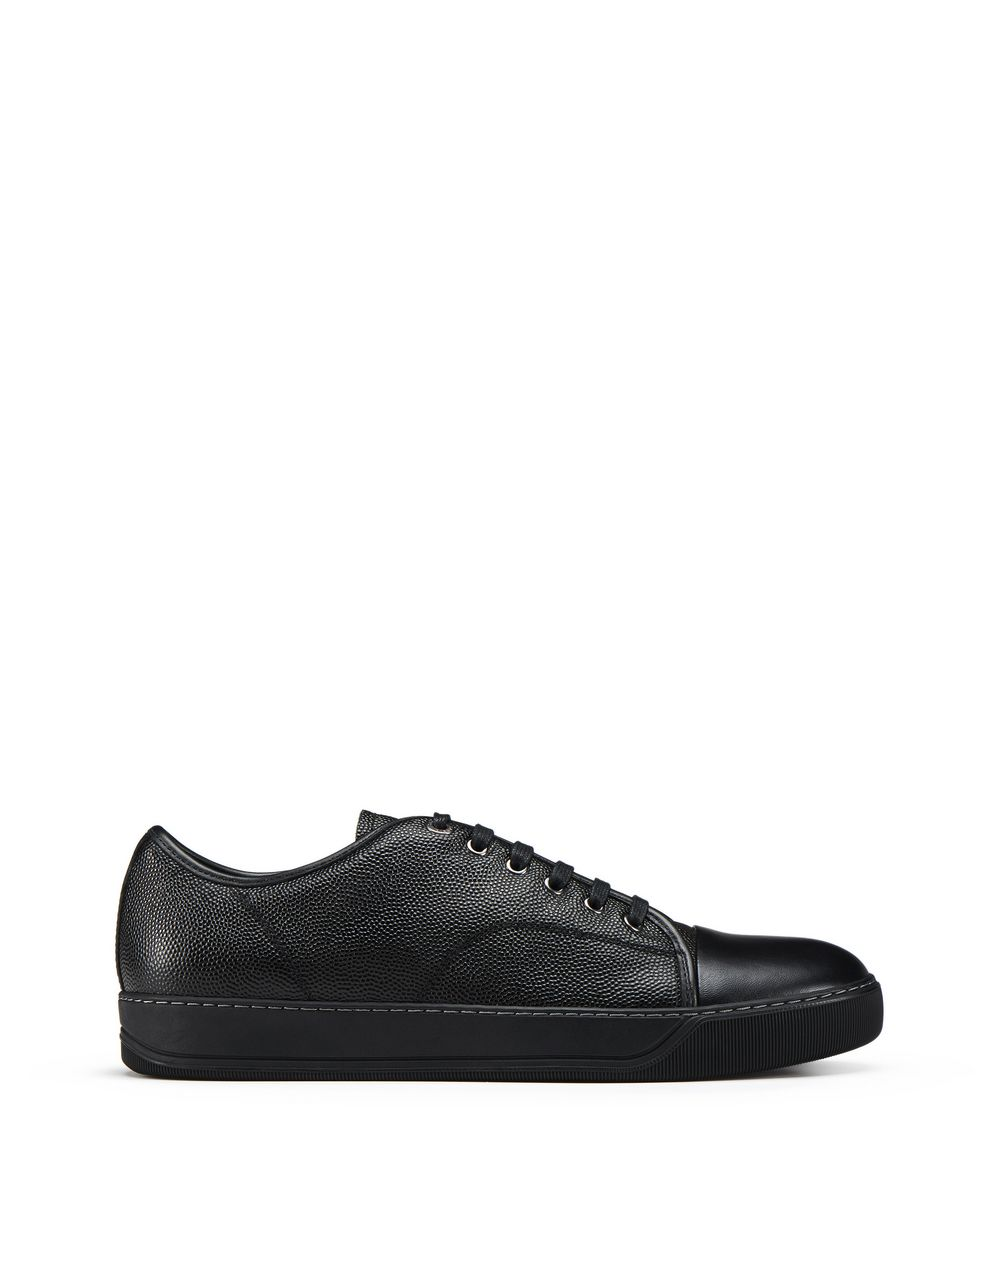 DBB1 GRAINED LEATHER SNEAKERS - Lanvin